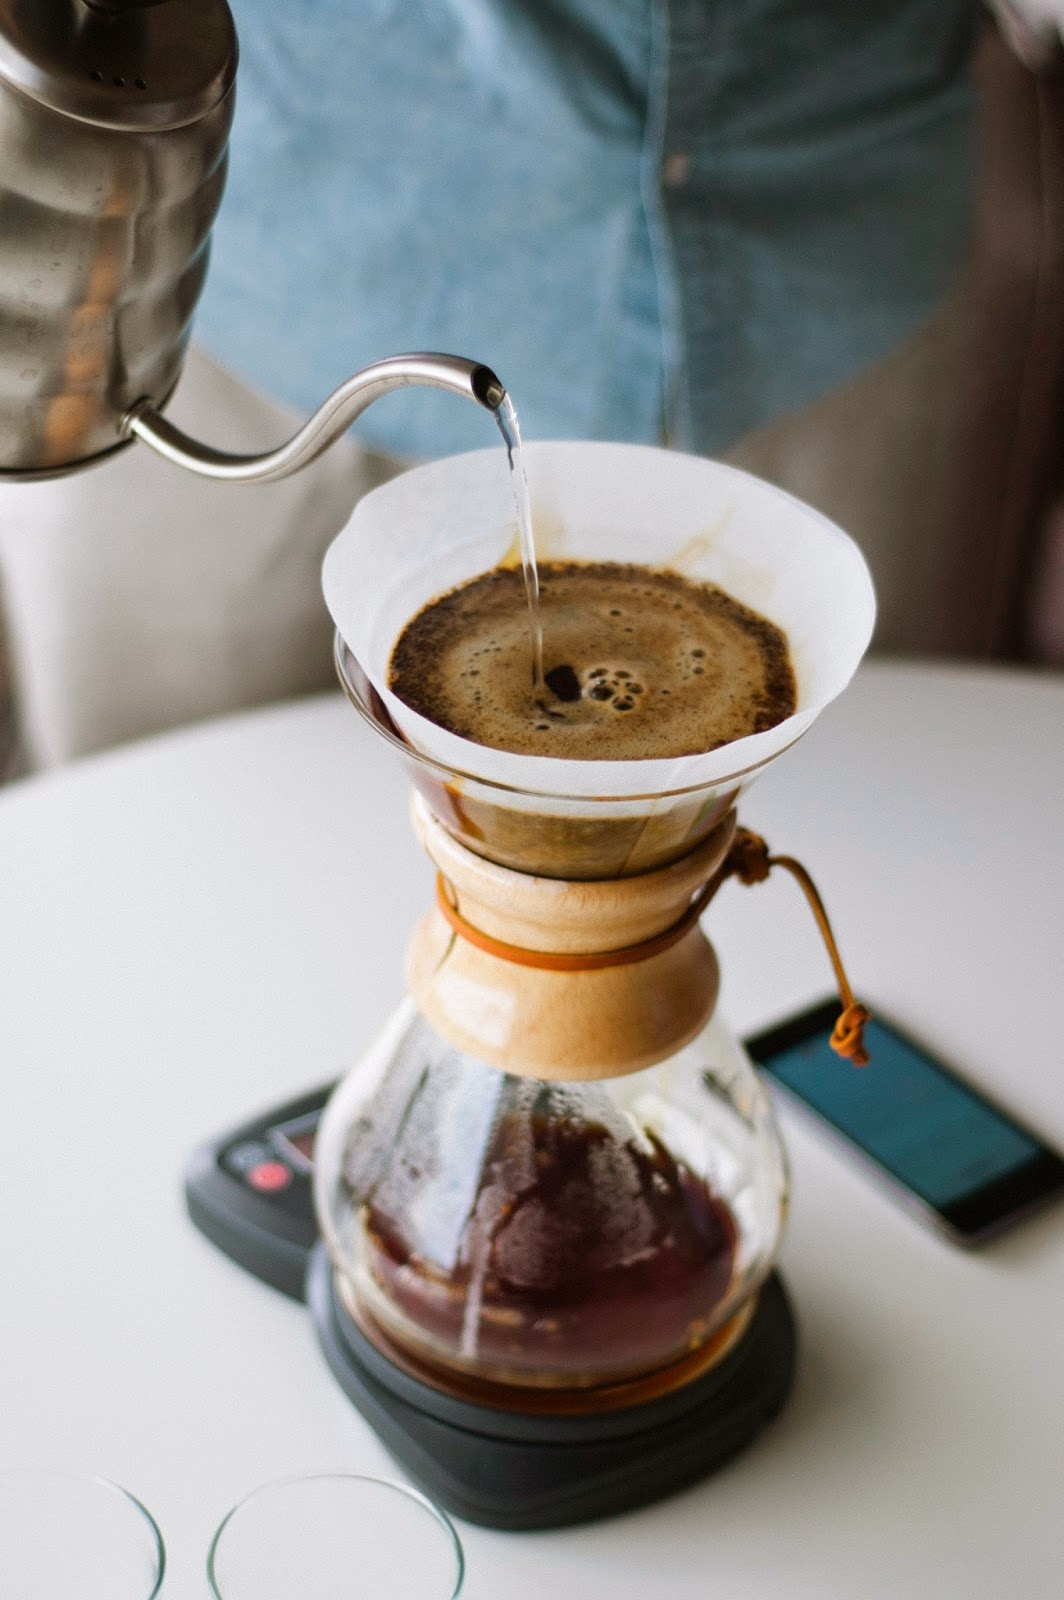 Brewing Panther Coffee in a Chemex